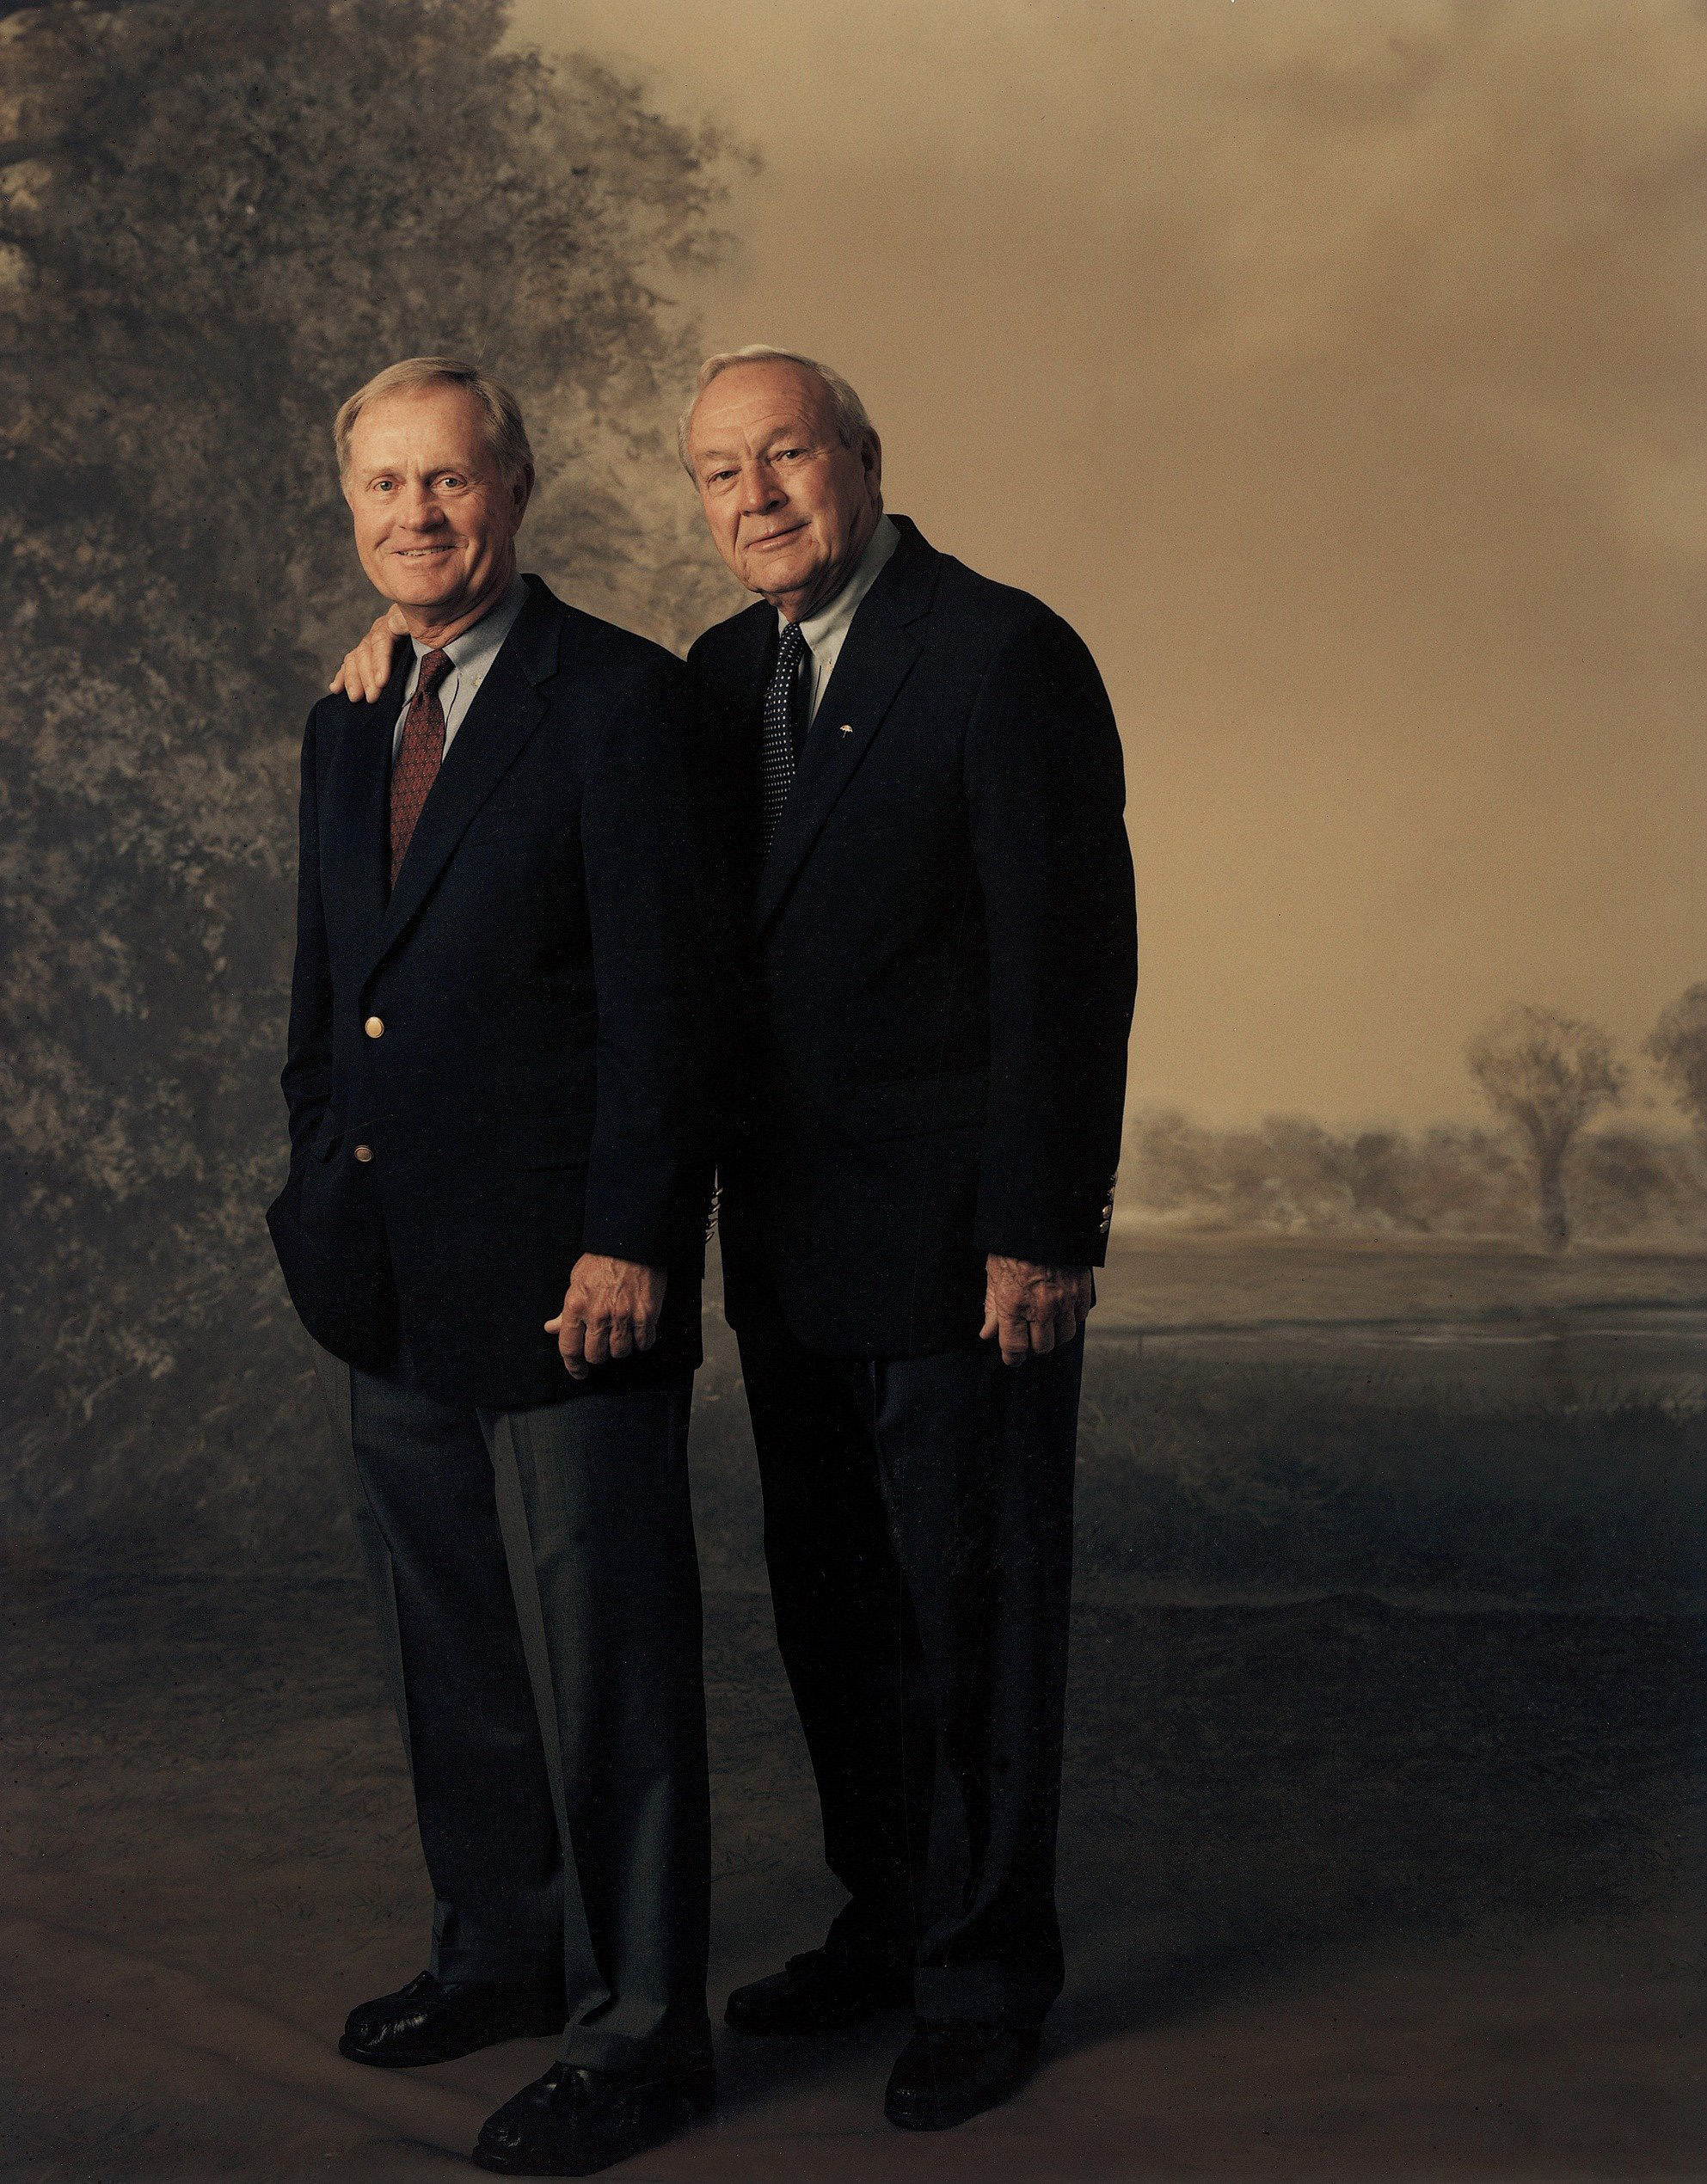 Jack Nicklaus and Arnold Palmer pose for a portrait in 2003.